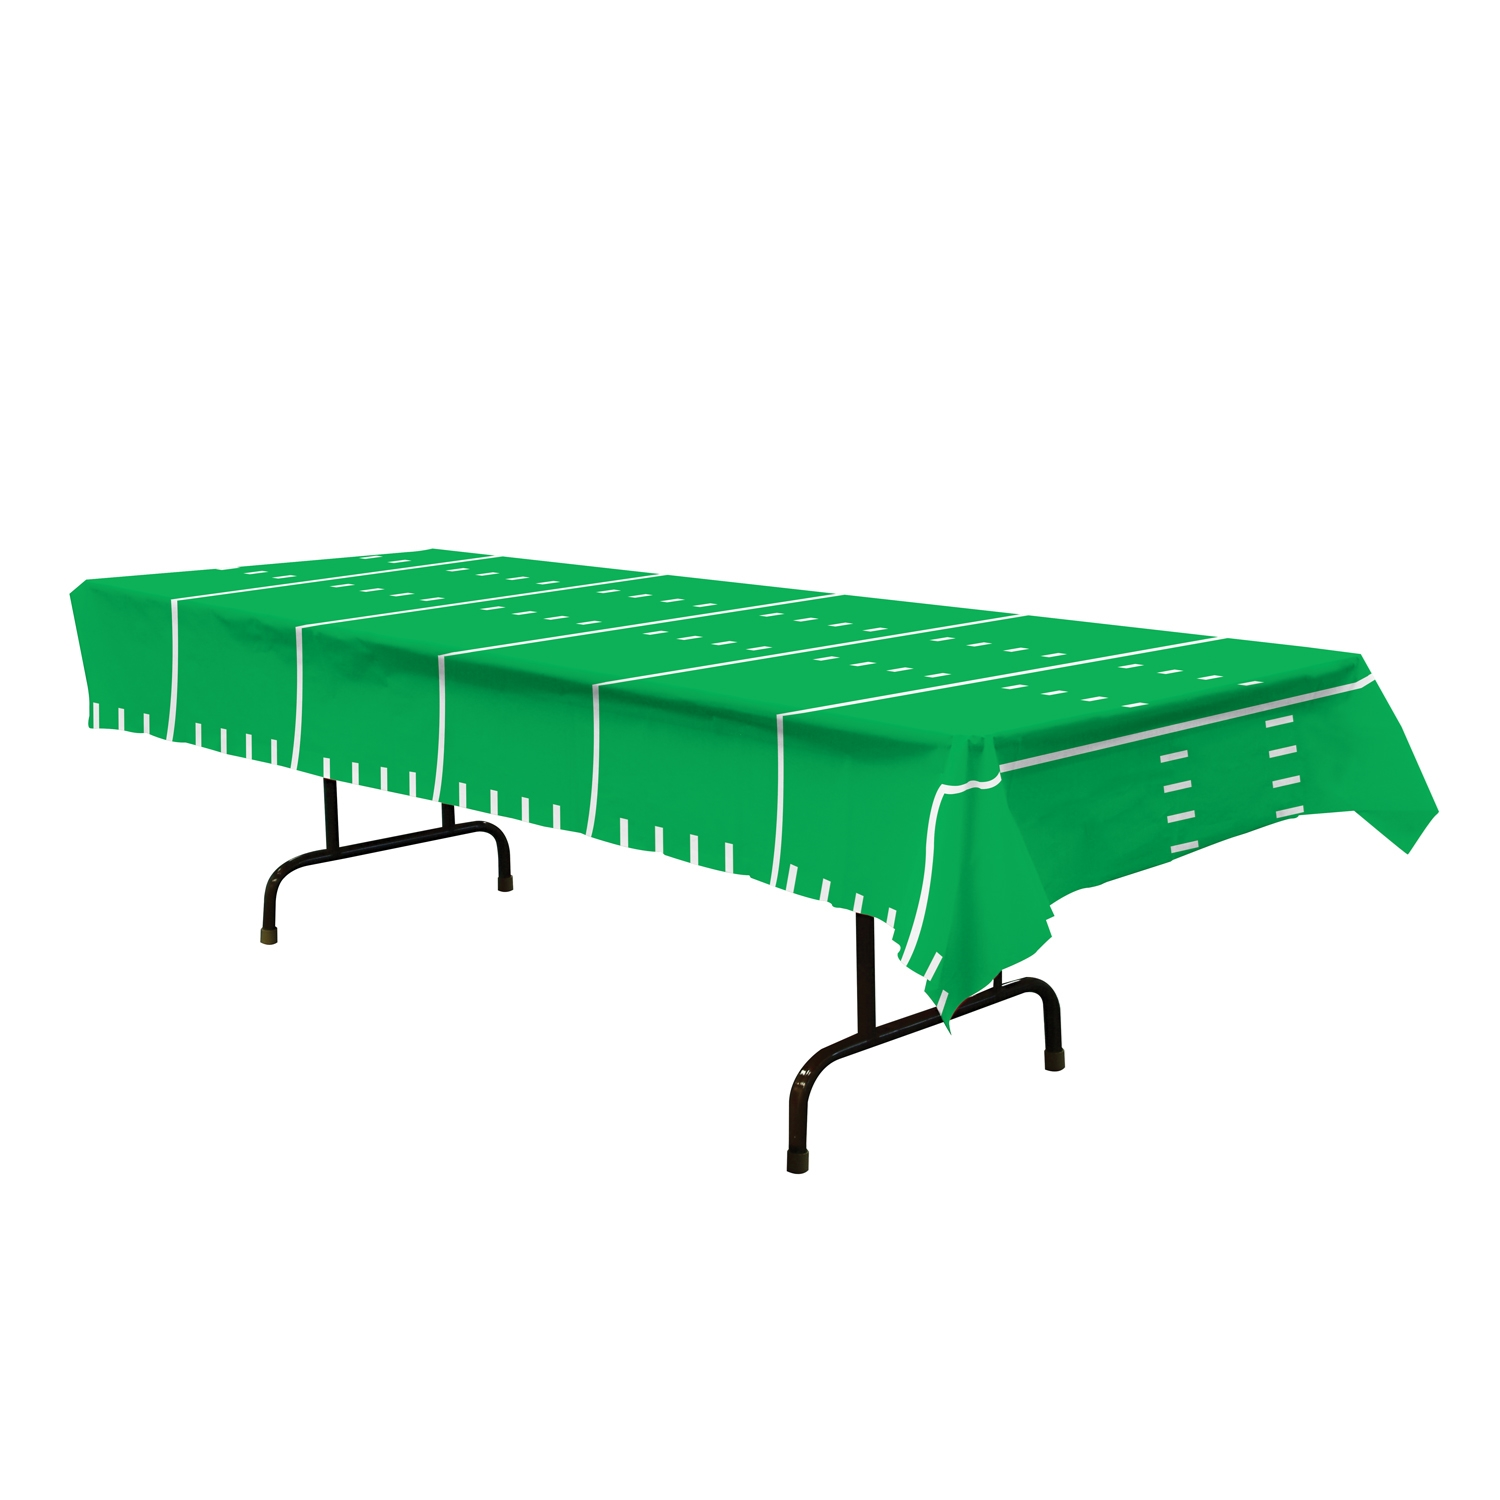 green plastic table cover that looks like a football field